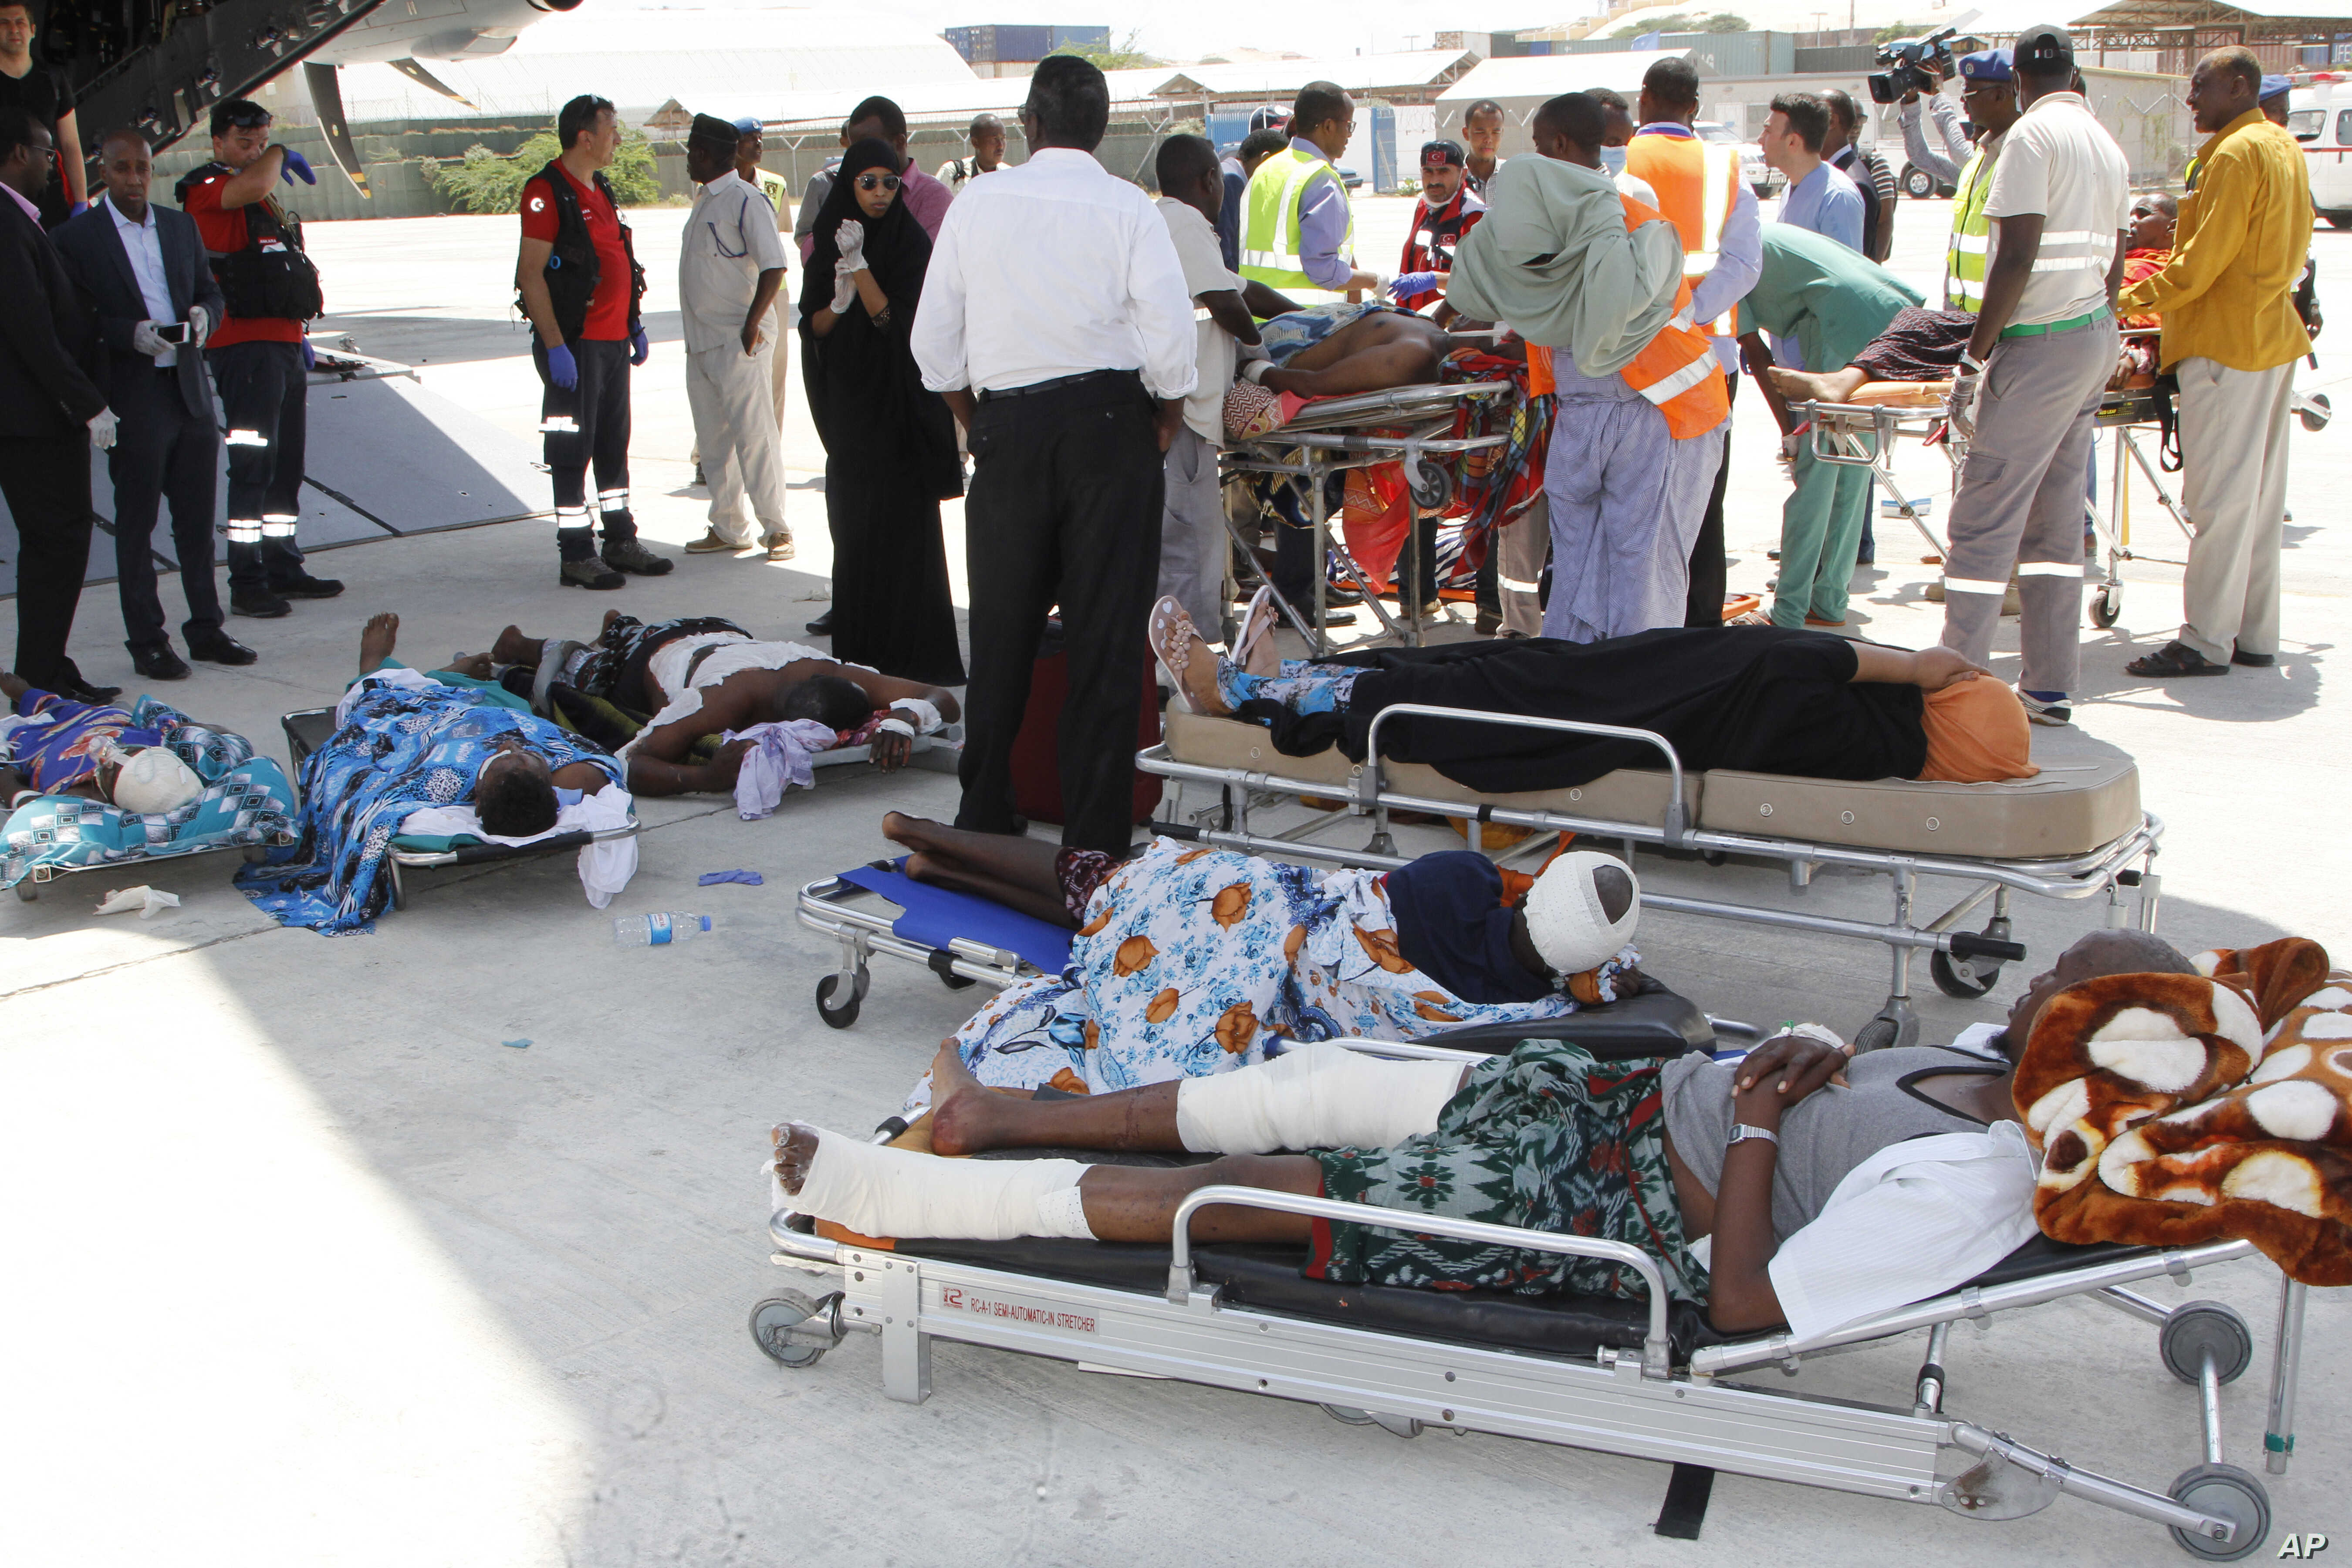 Critically wounded people wait to be moved into a waiting Turkish plane to be airlifted for treatment in Turkey, in Mogadishu, Somalia, Oct, 16, 2017.